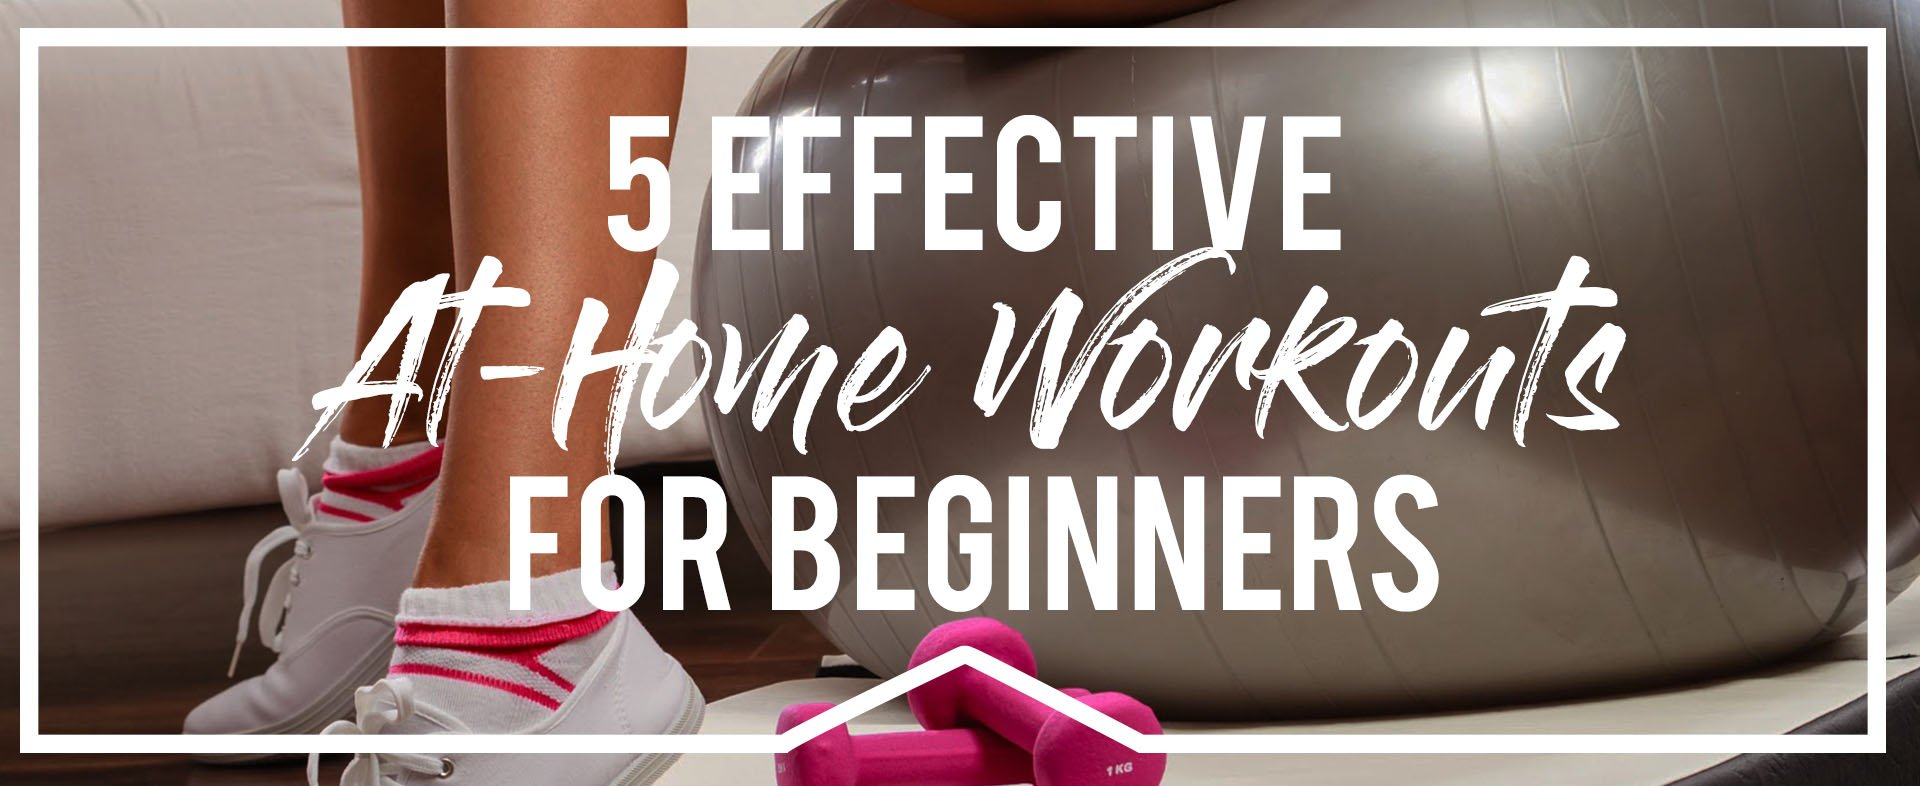 5 Effective At-Home Workouts for Beginners